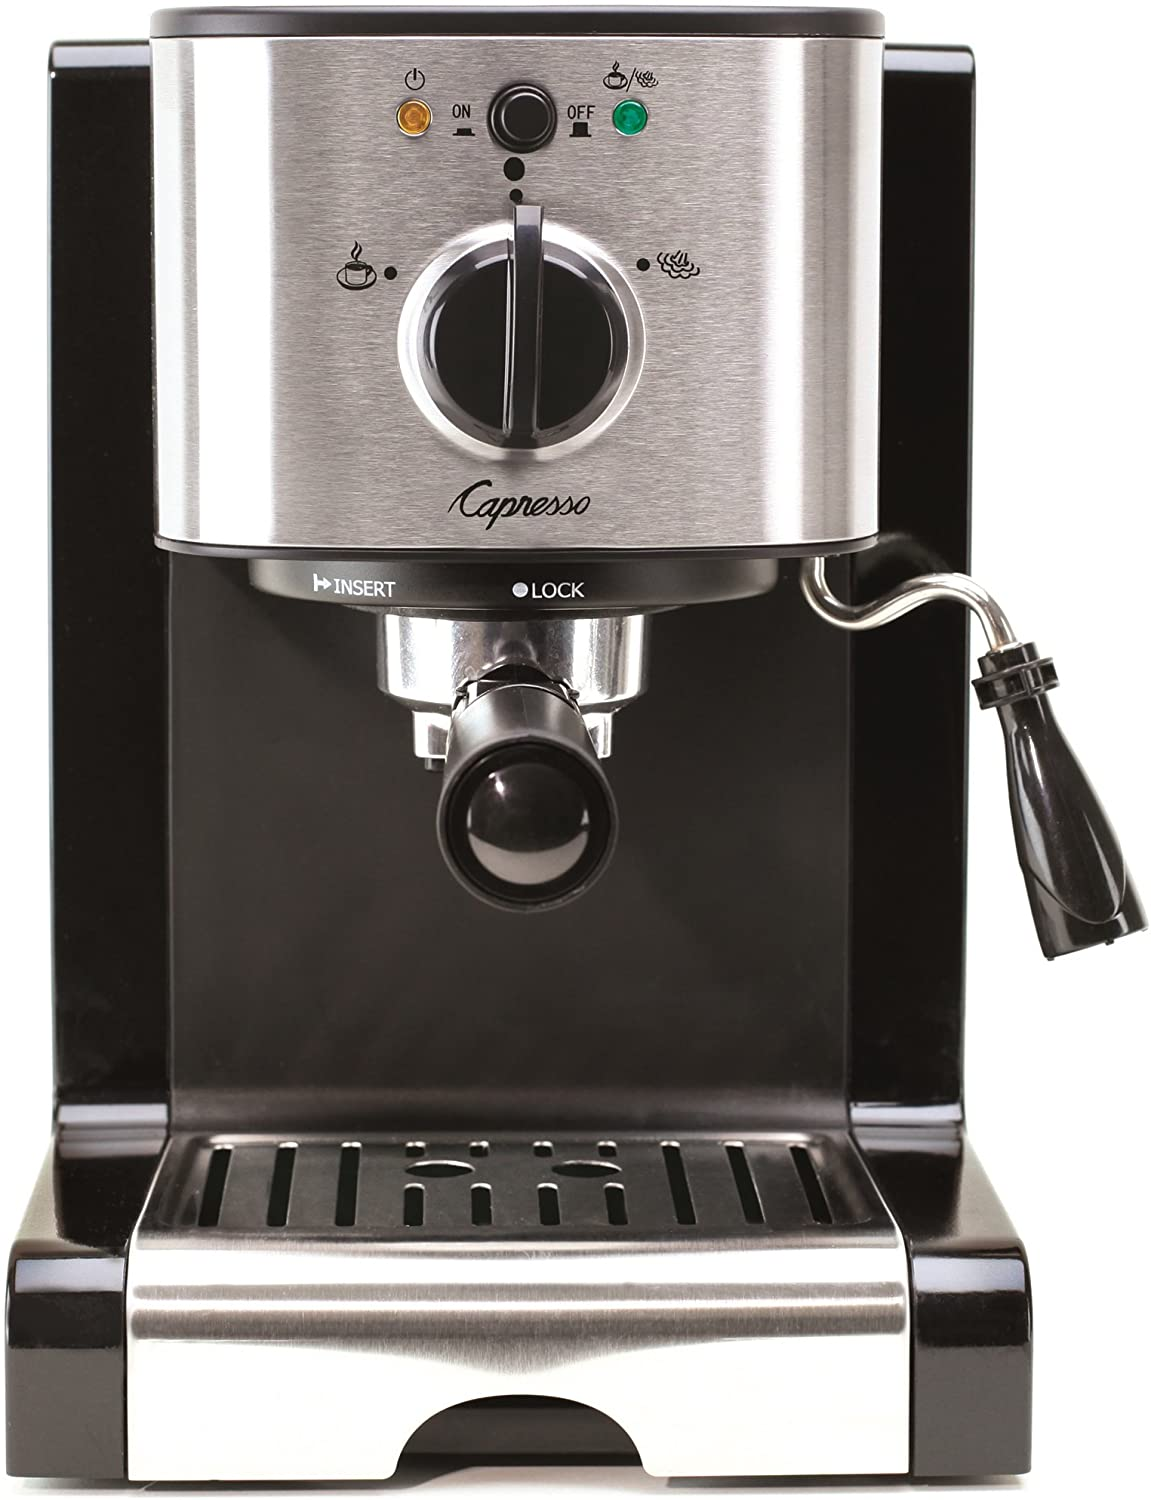 Capresso 117.05 Stainless Steel Pump Espresso and Cappuccino Machine EC50 Black//Stainless